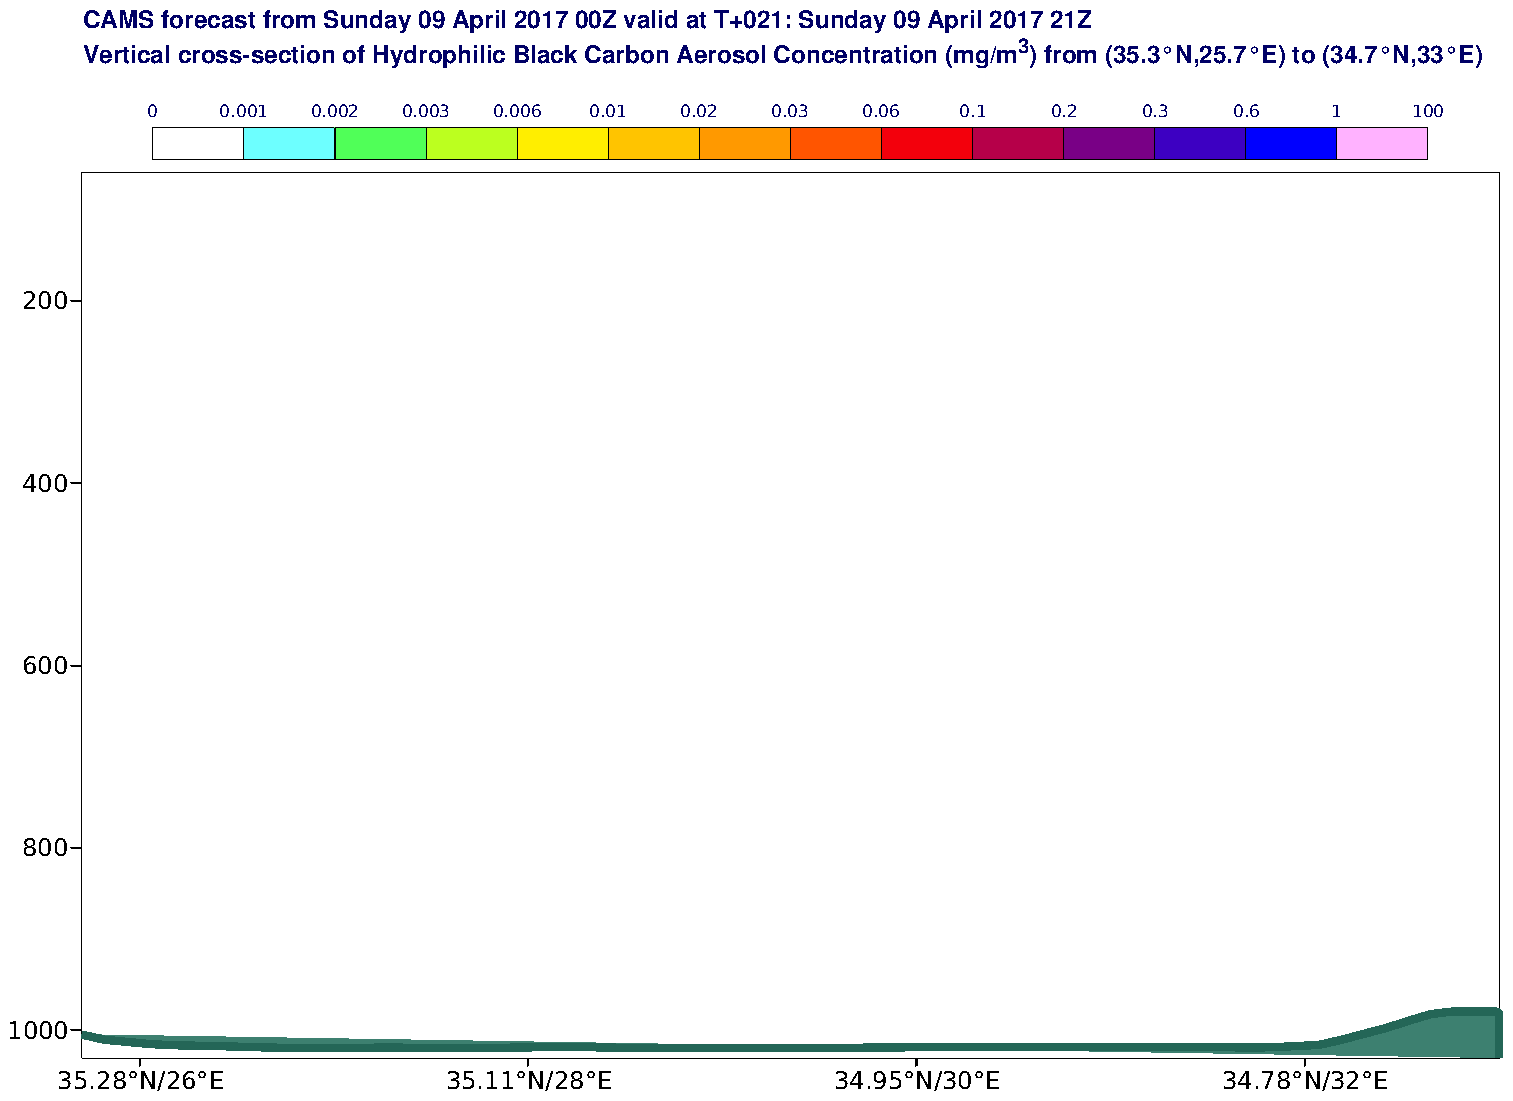 Vertical cross-section of Hydrophilic Black Carbon Aerosol Concentration (mg/m3) valid at T21 - 2017-04-09 21:00